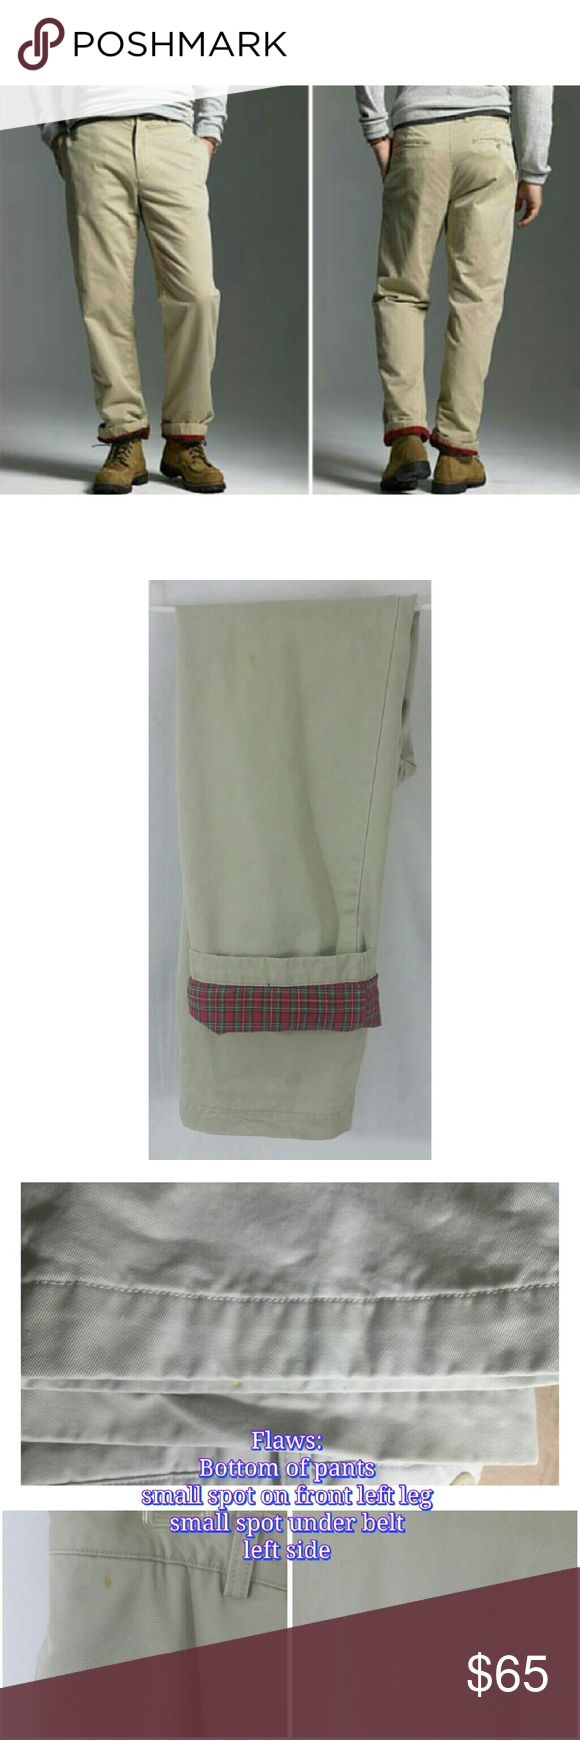 Men's J.Crew Flannel Lined Khakis Looking for some really comfy and warm pants? Look no further!! These J.Crew khakis are heavy and thick. Fully red plaid flannel lined.  Size 32x34 Flaws shown in pictures J. Crew Pants Chinos & Khakis